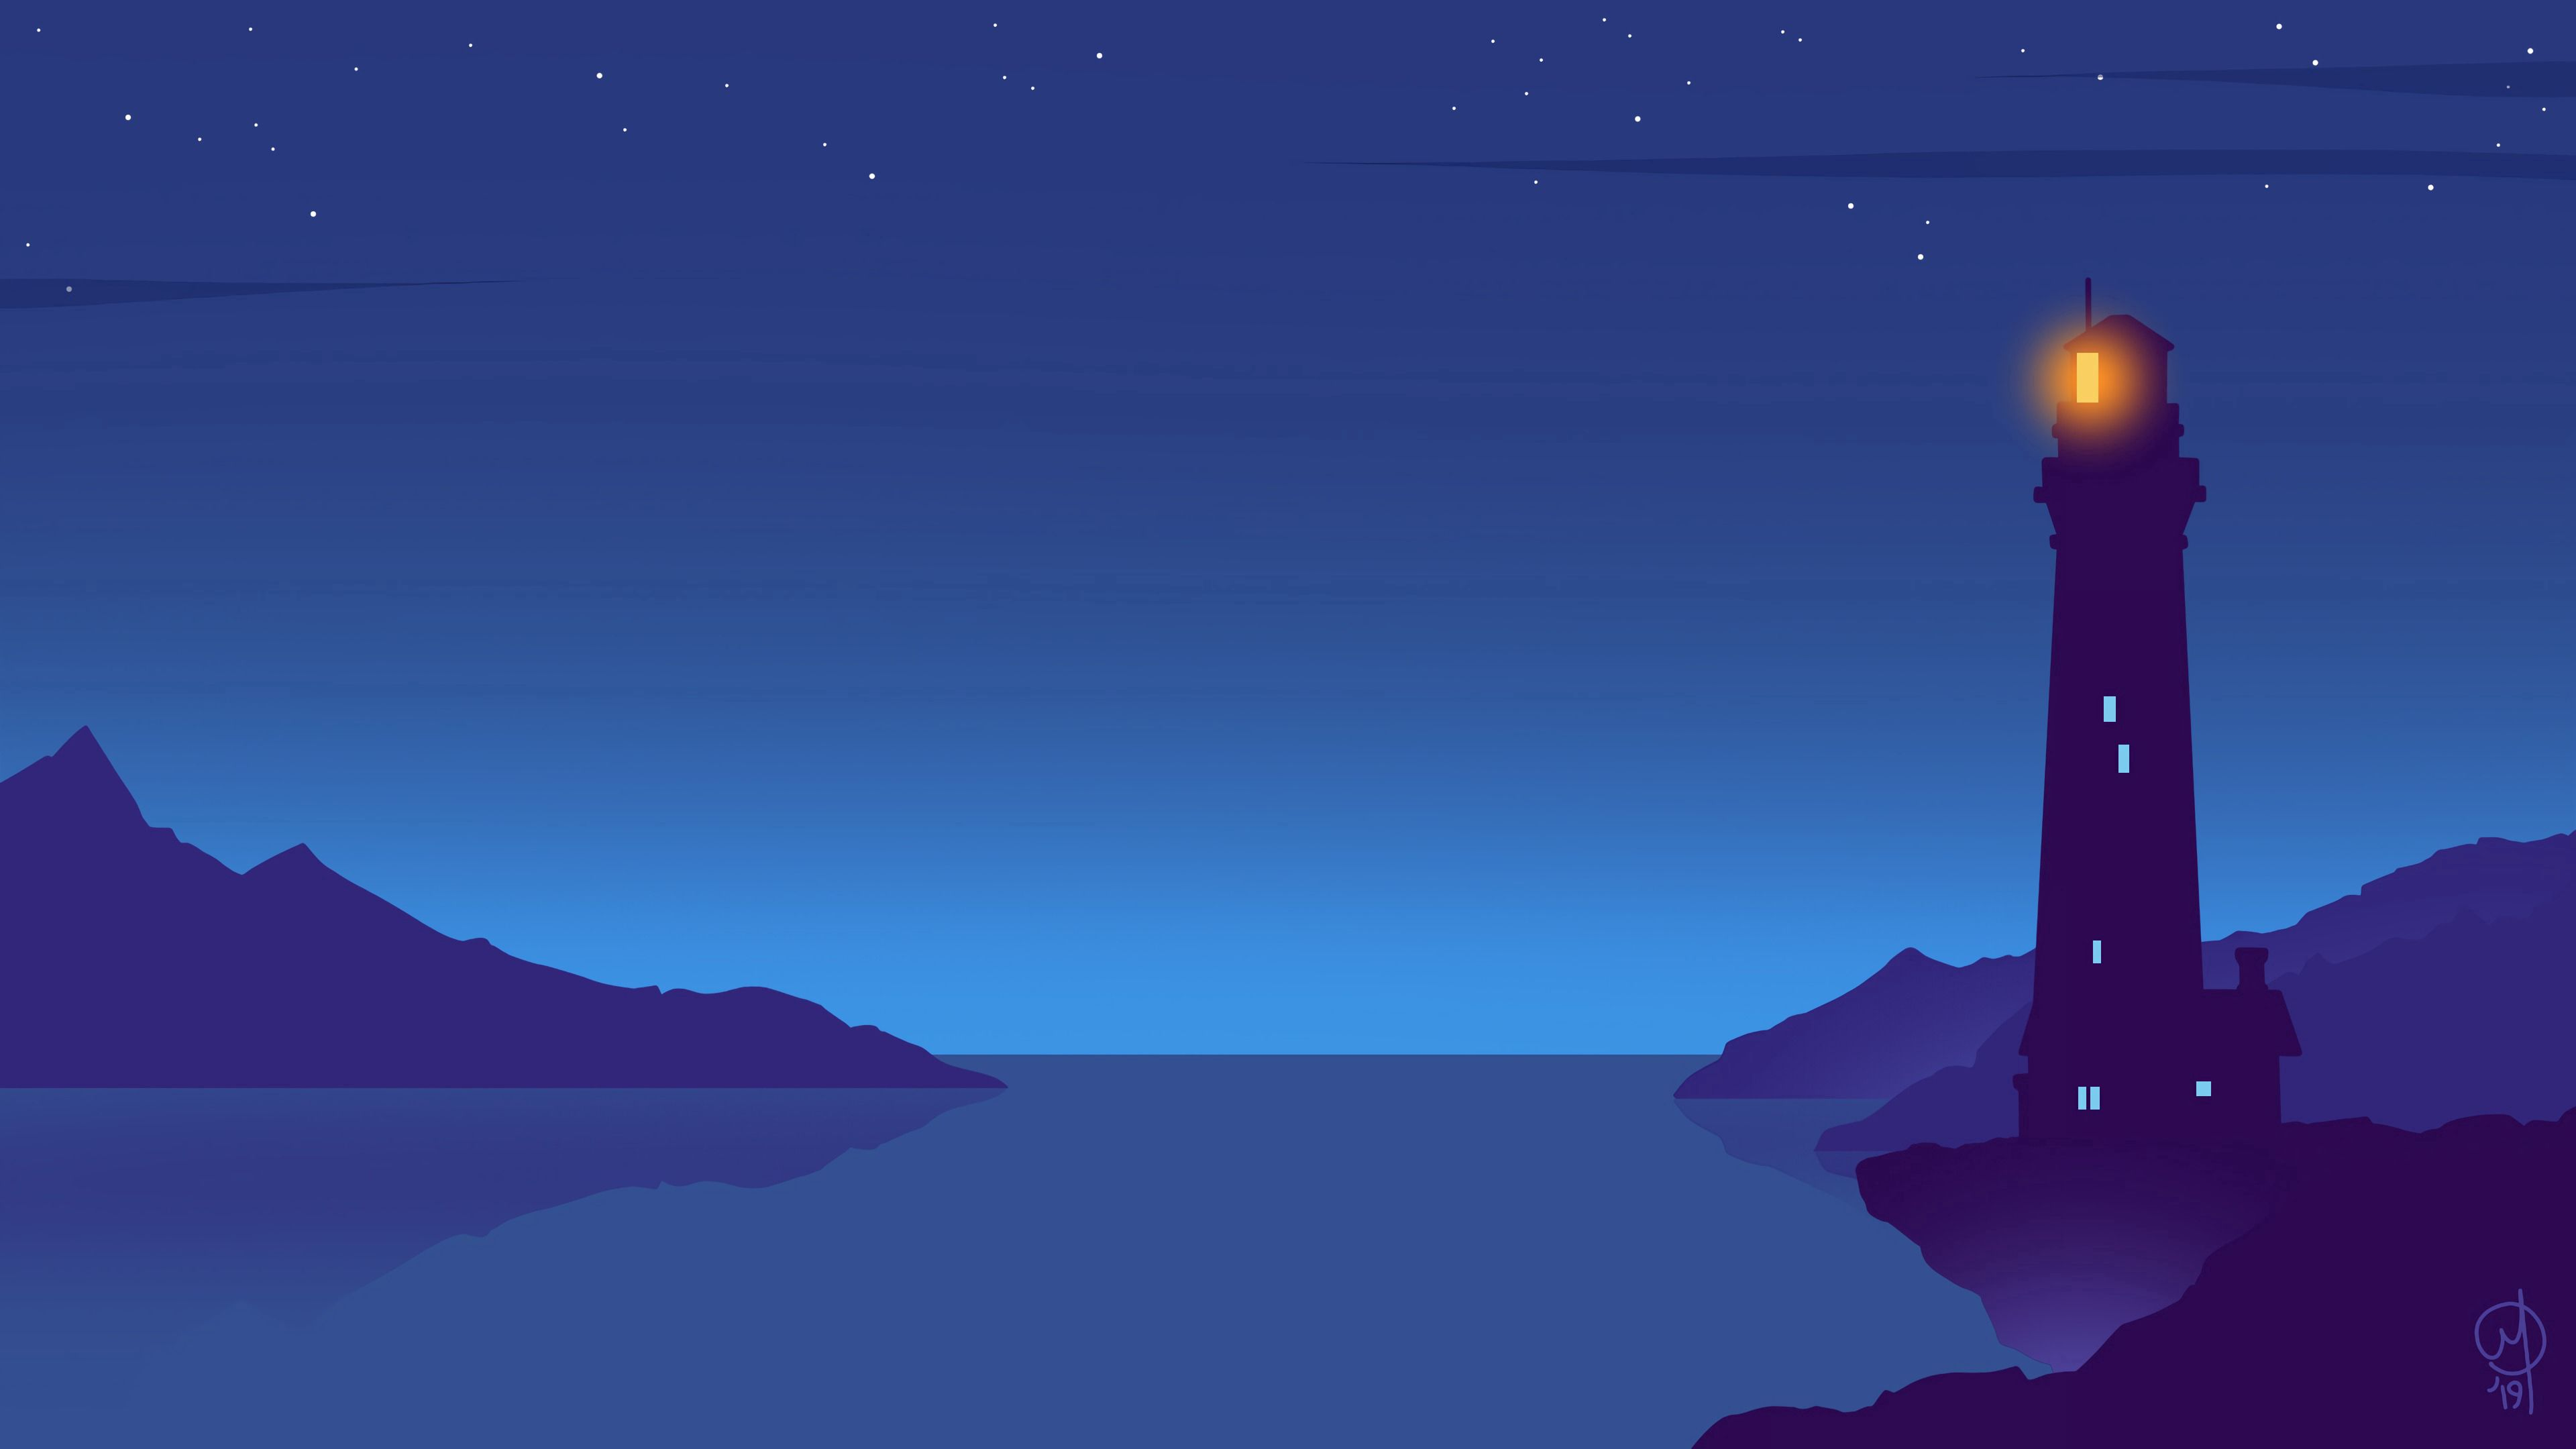 80498 free wallpaper 720x1280 for phone, download images Art, Night, Vector, Lighthouse 720x1280 for mobile